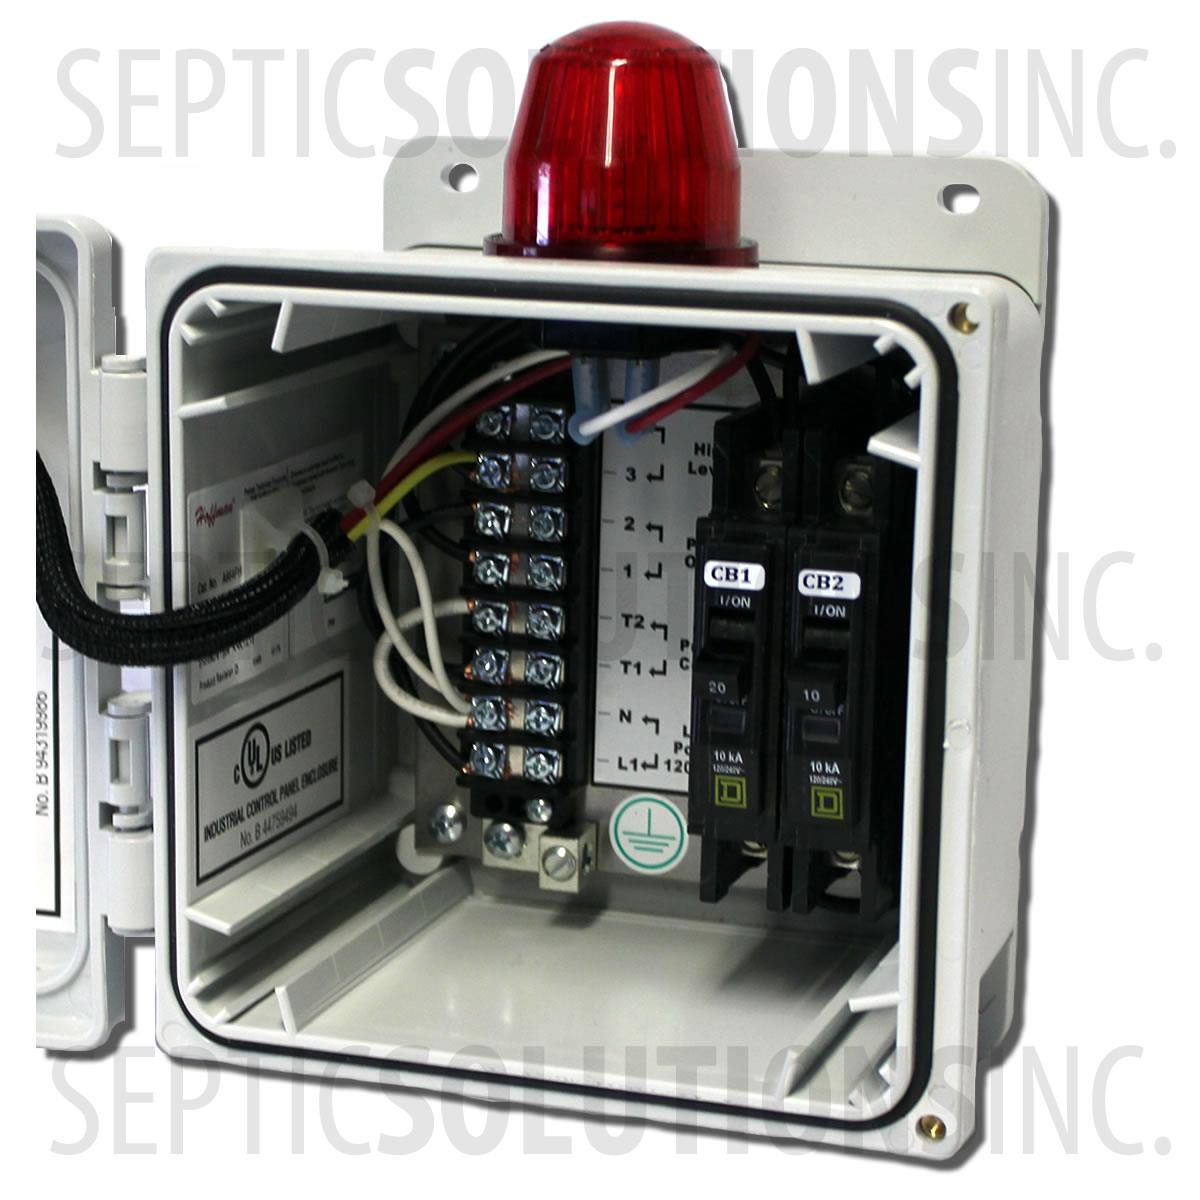 Two Breaker Economy Simplex Control Panel High Water Alarm